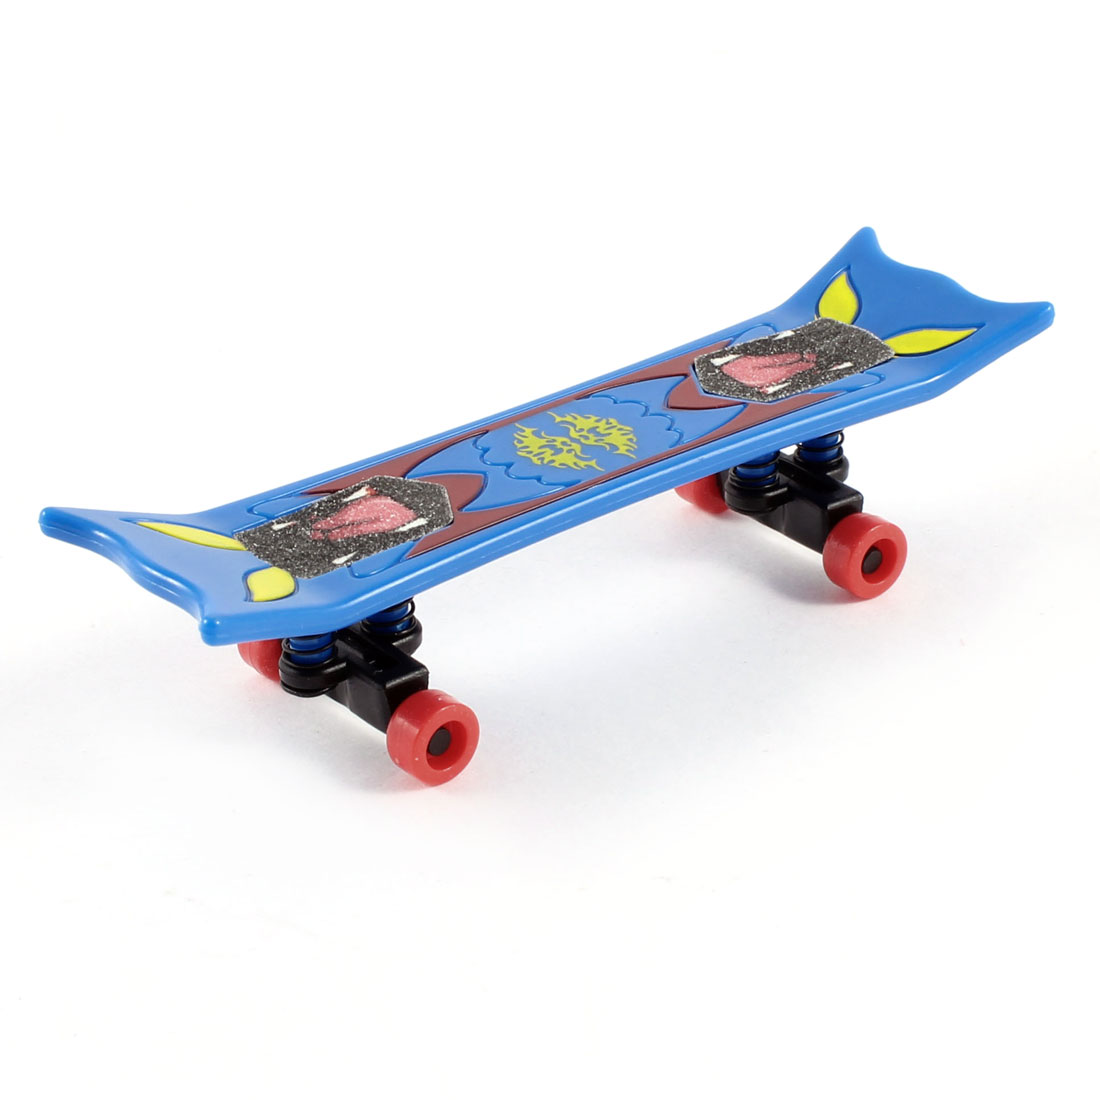 "3.7"" Length Cartoon Printed Plastic Handboard Finger Skate Boarding Toy Blue"